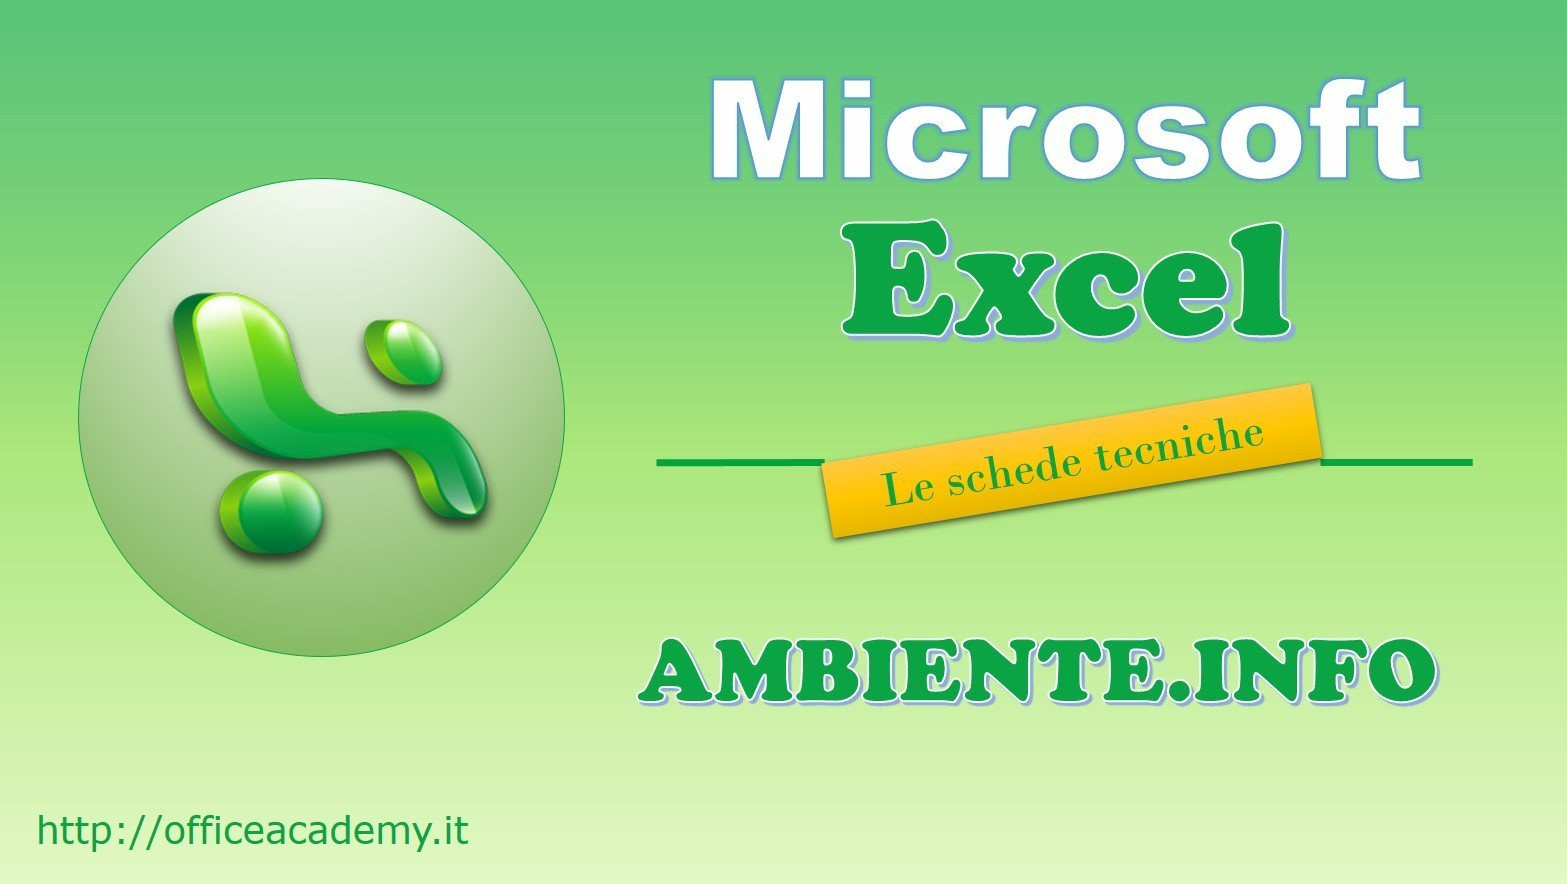 AMBIENTE.INFO